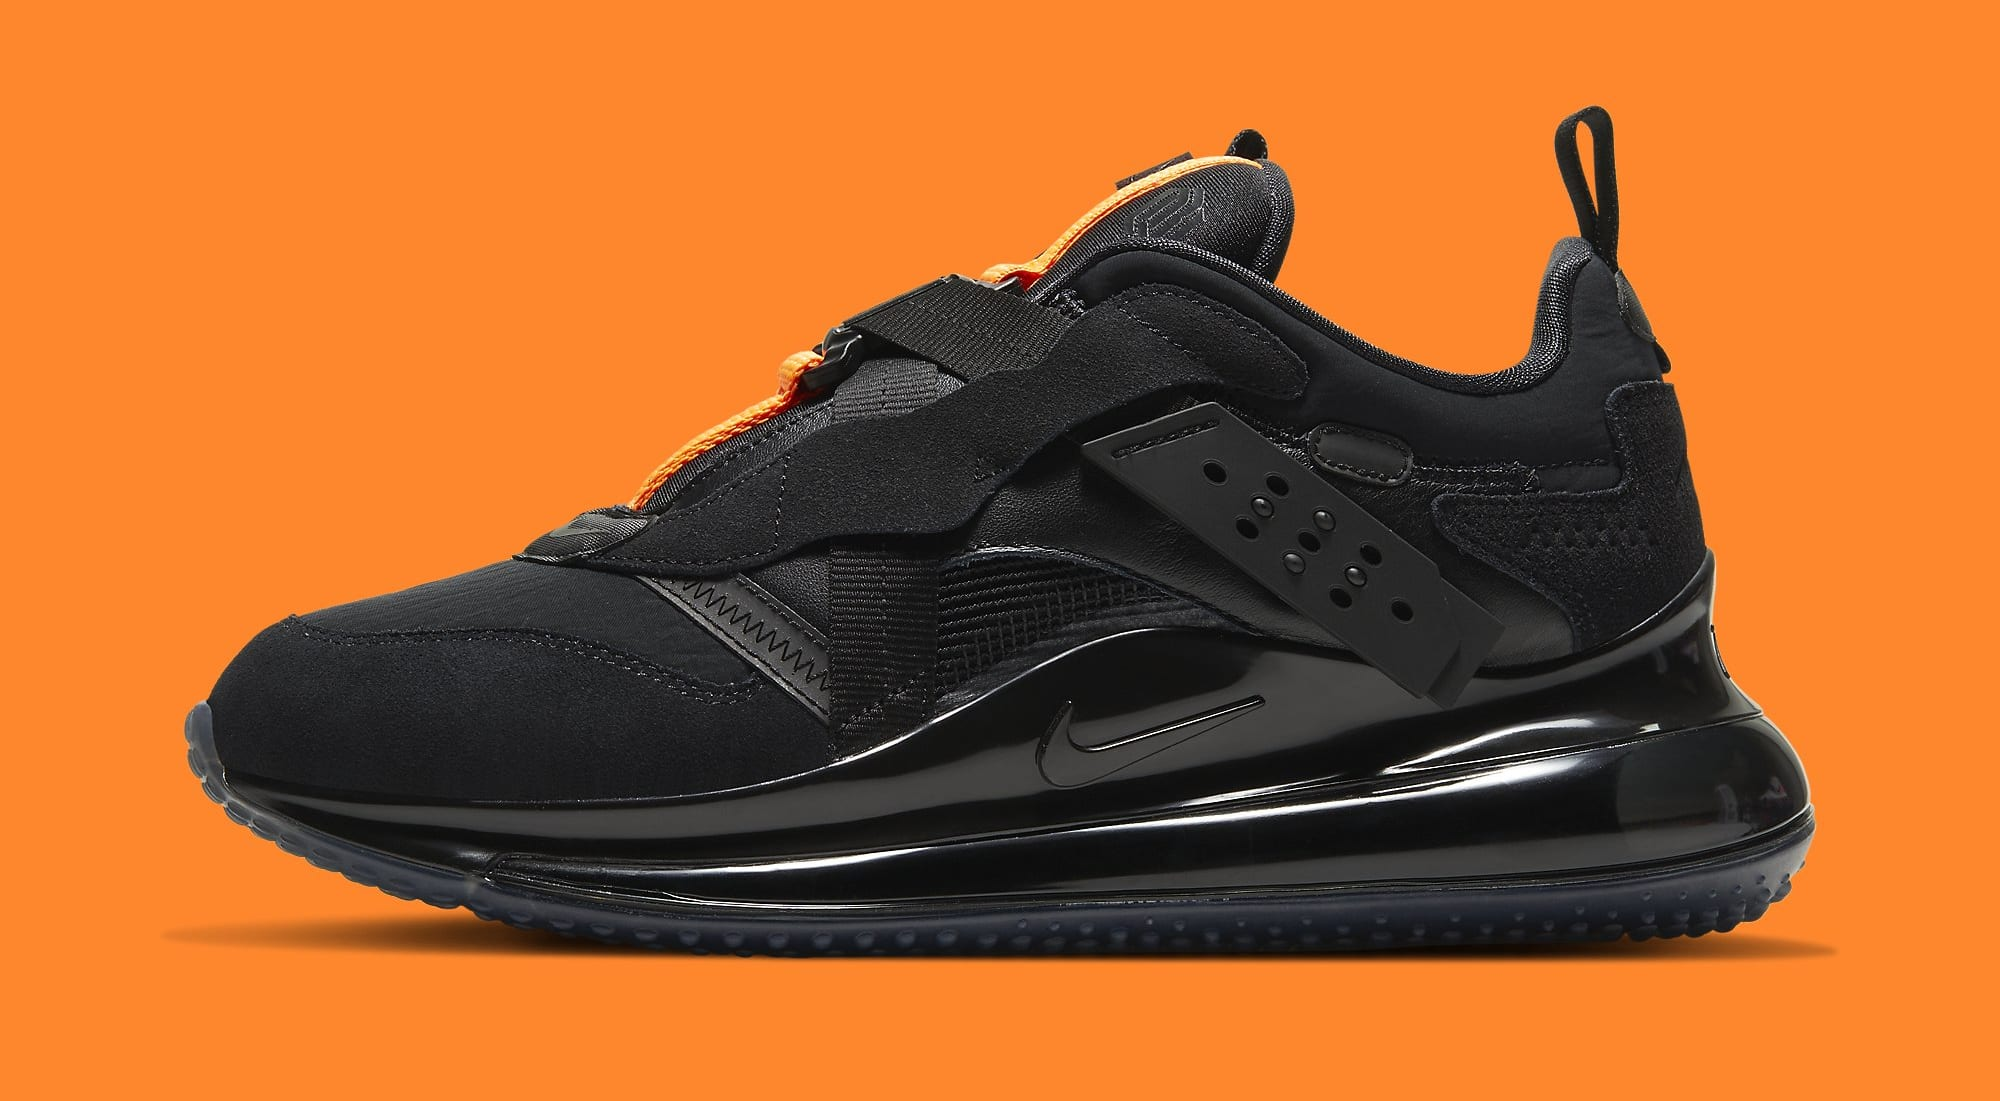 nike-air-max-720-slip-obj-black-dq4155-001-lateral